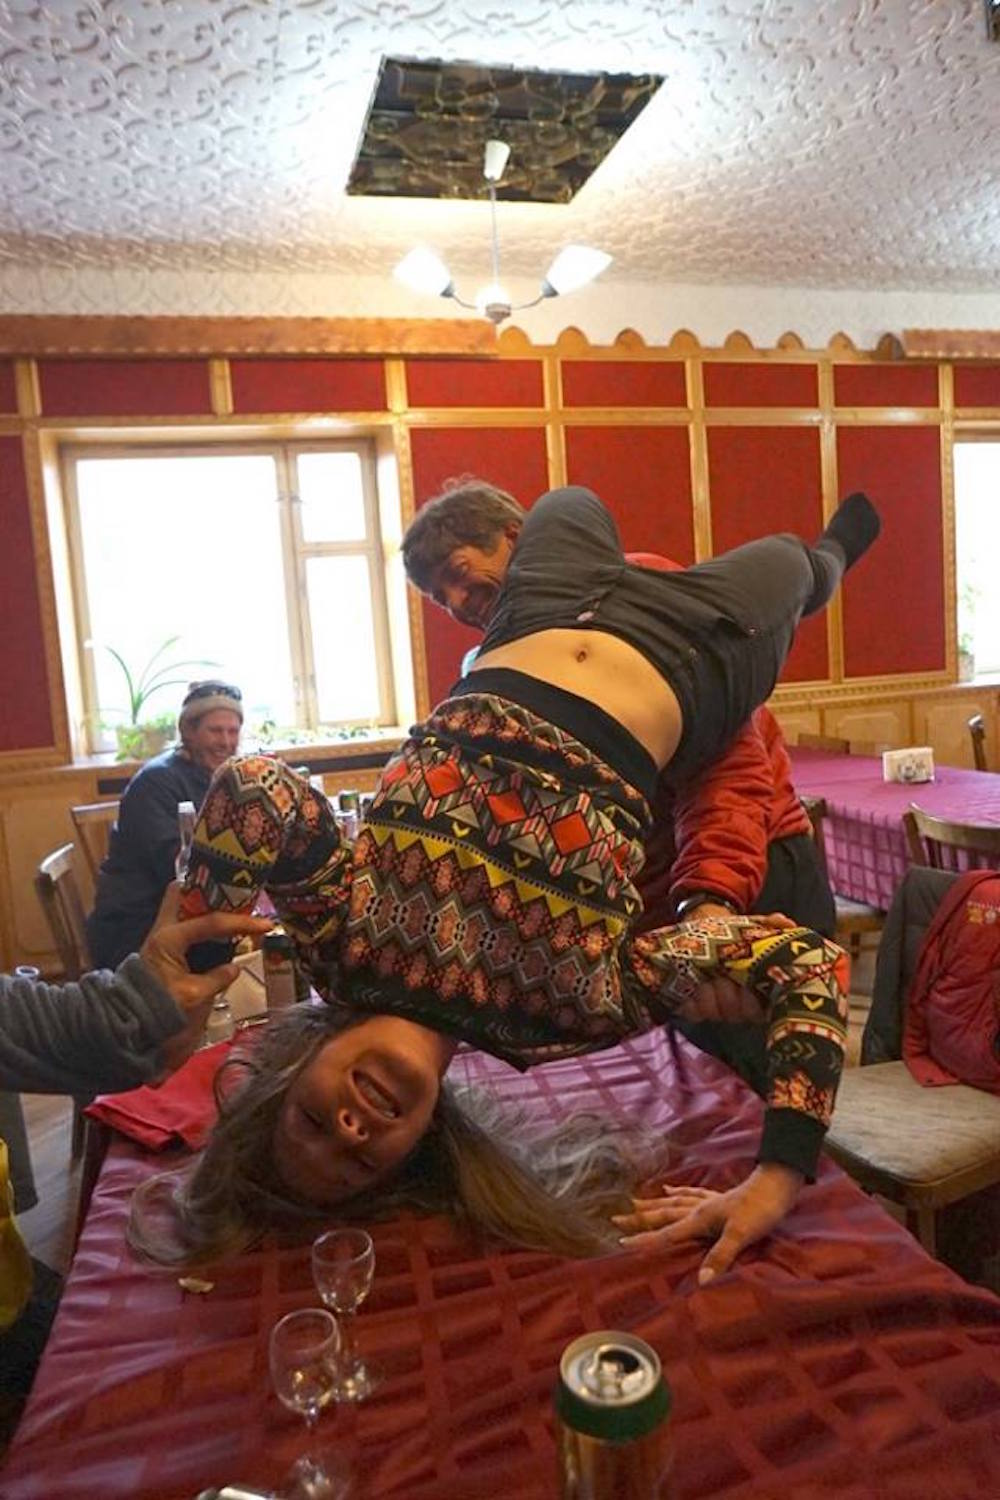 Yes, things got a little wild in Pyramiden... There may or may not have been spanking... photo: paul